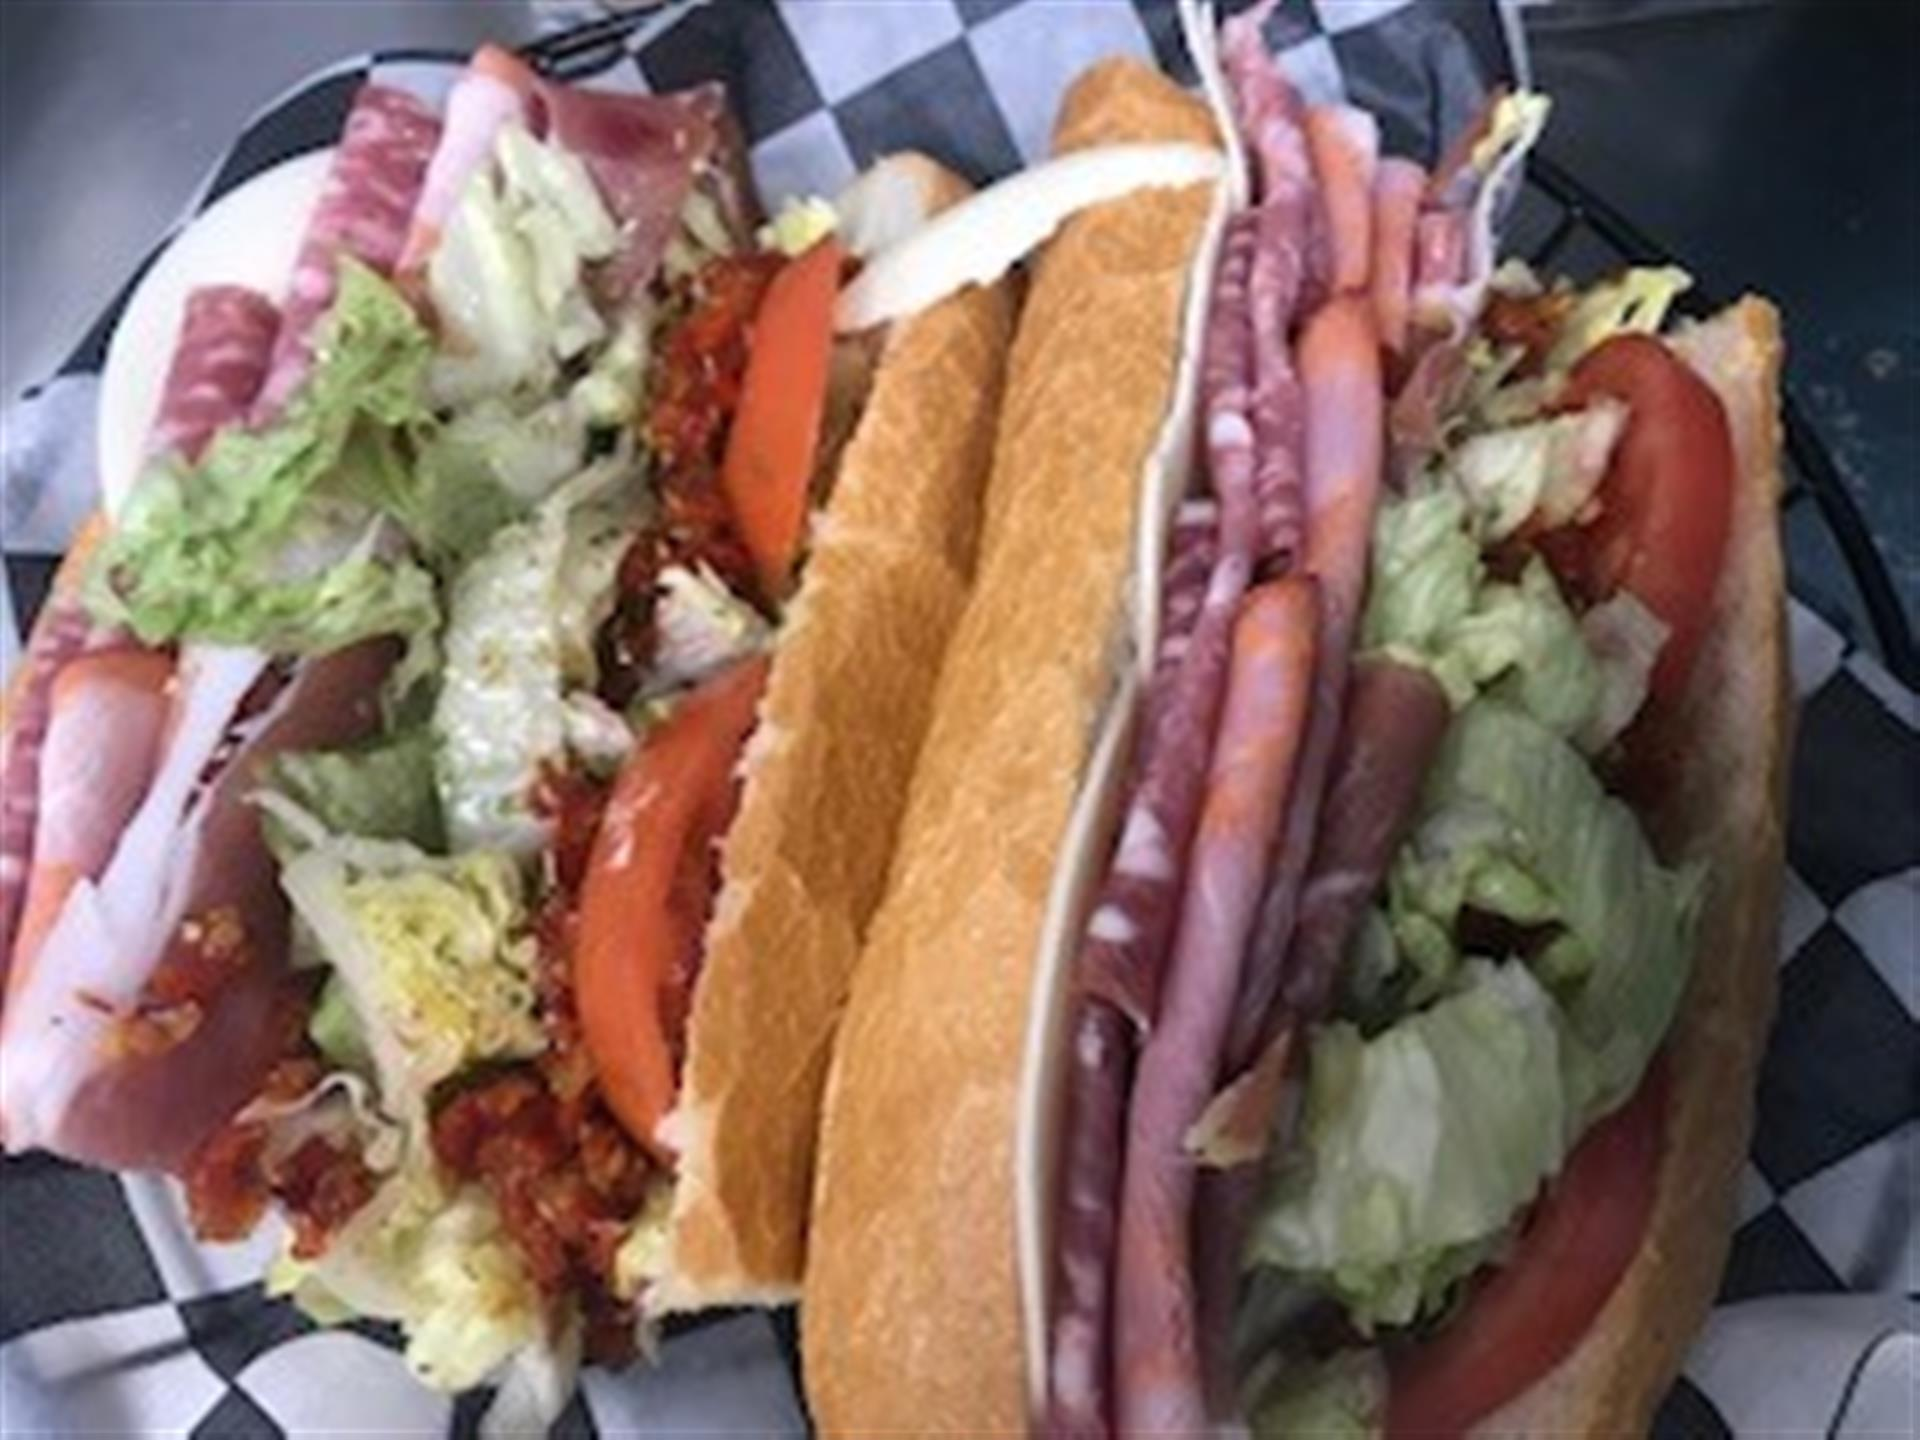 Two Italian Cold Cut subs on a plate